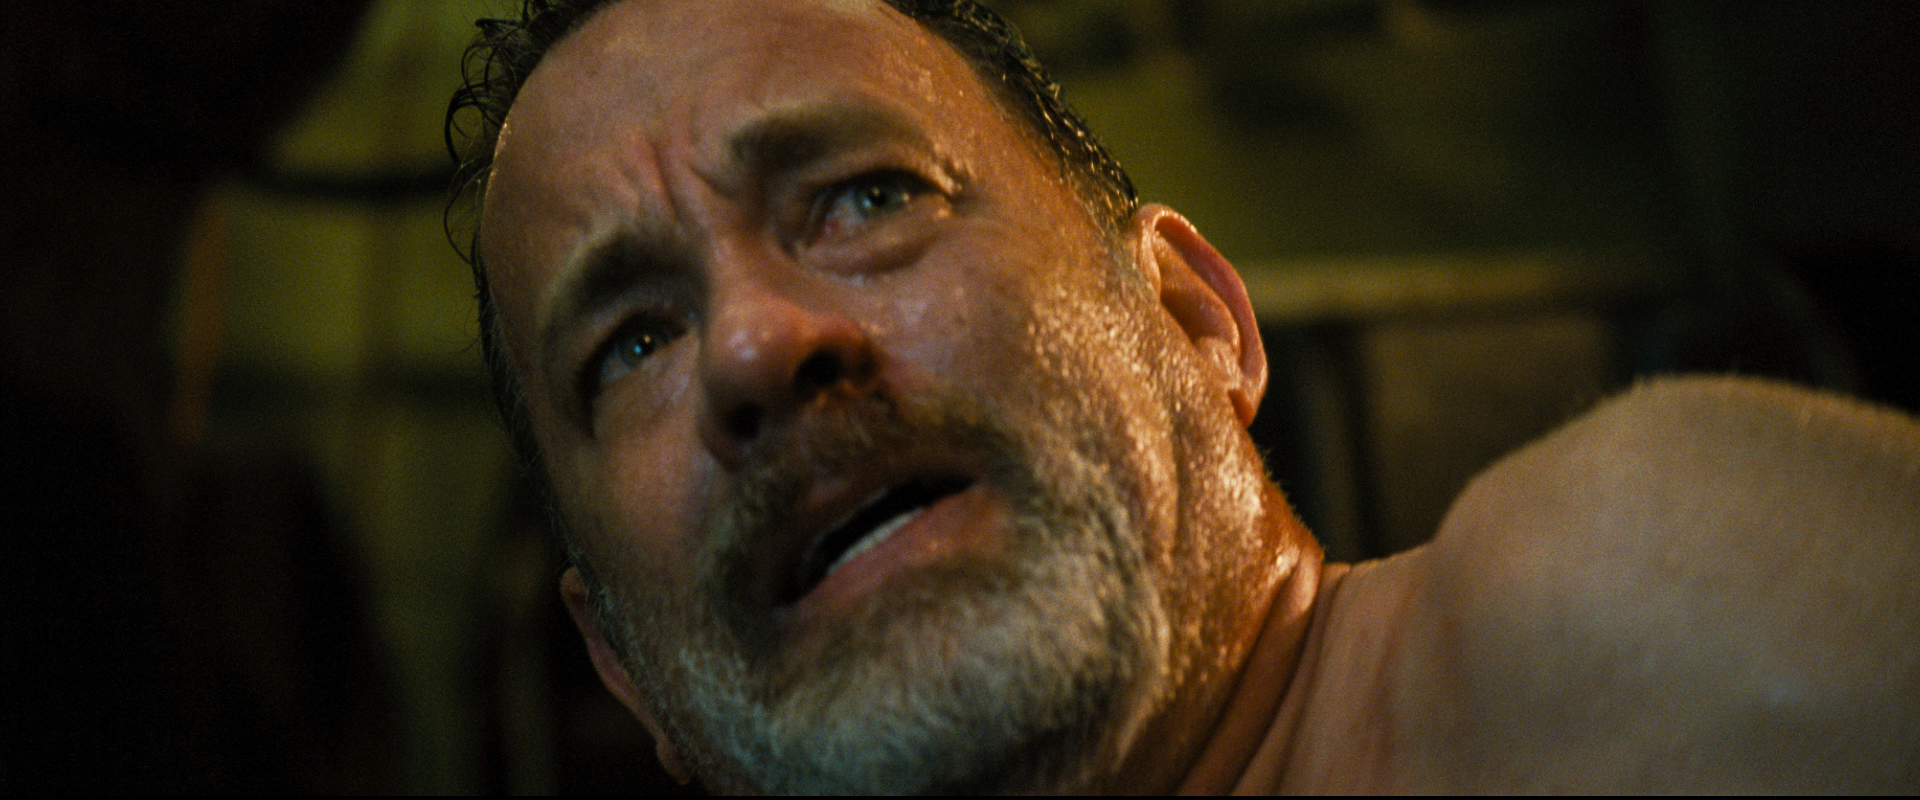 Oscar nominations 2014: From Idris Elba to Tom Hanks, which were the biggest snubs of the year?